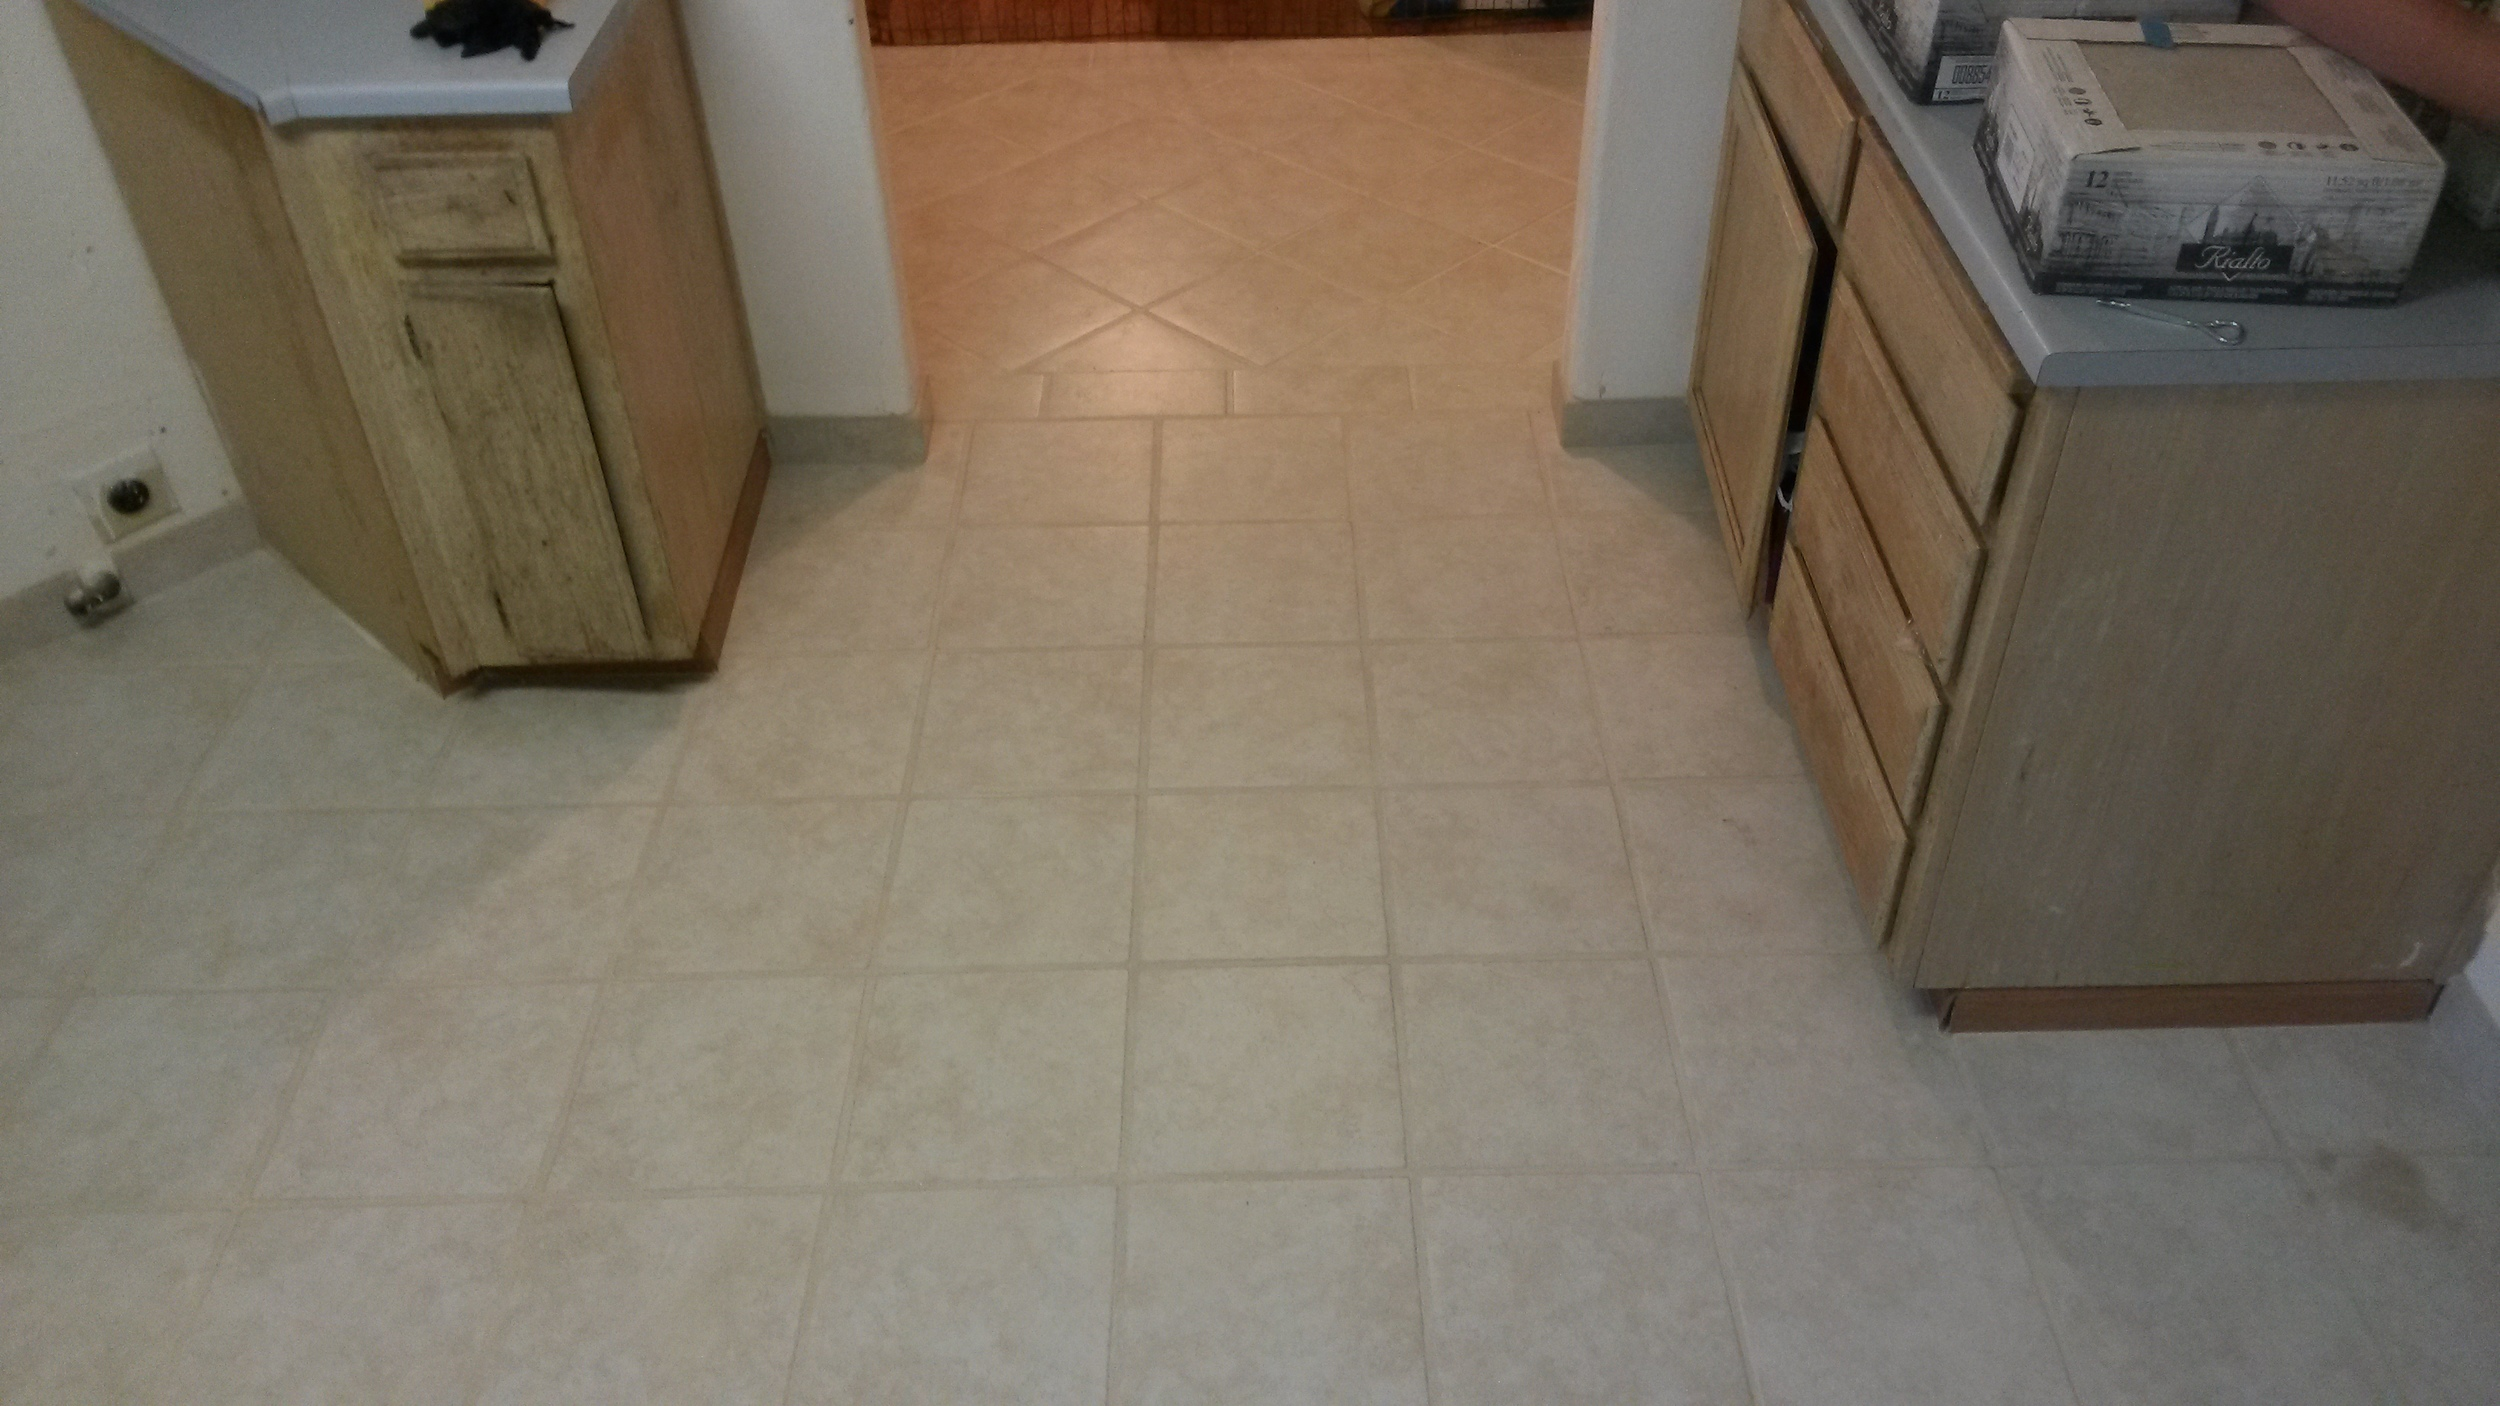 Finished Kitchen Tile Division.jpg